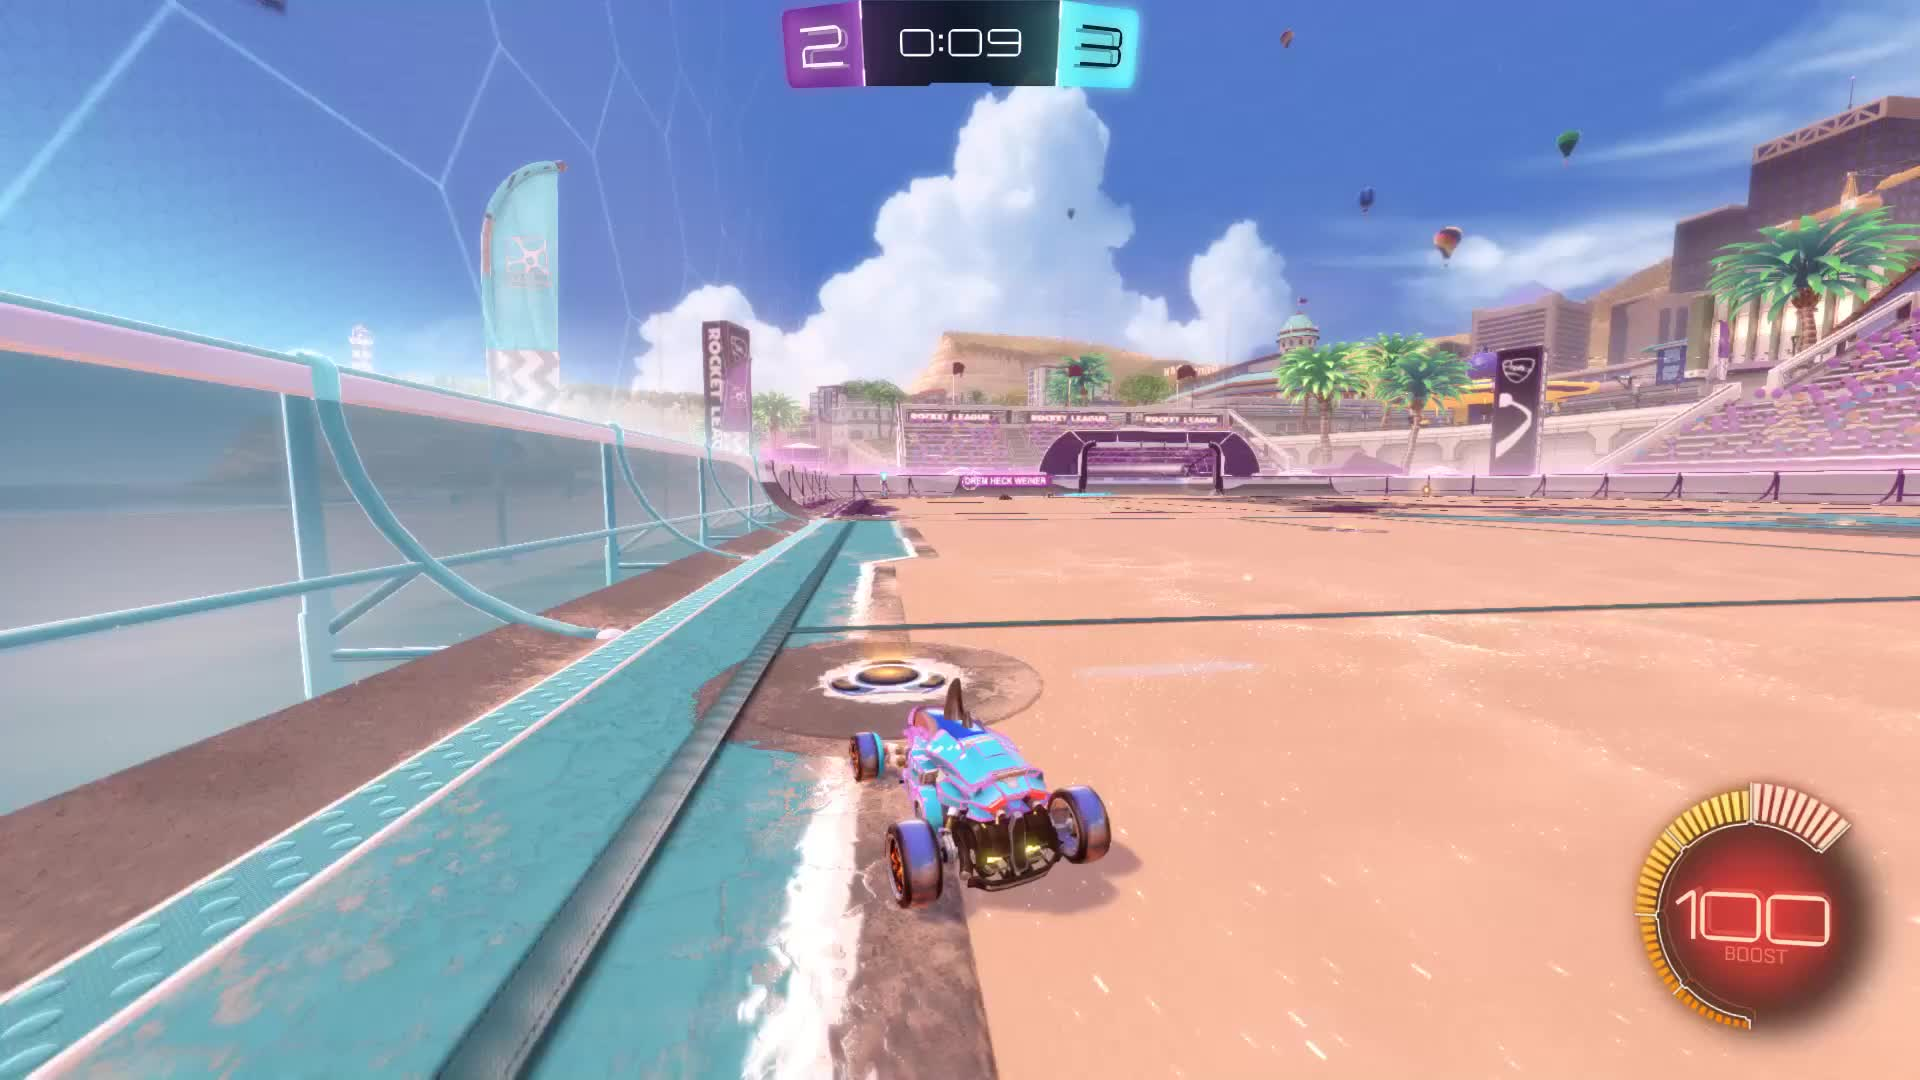 Gif Your Game, GifYourGame, Goal, Rocket League, RocketLeague, Sum Ting Wong, Goal 6: Sum Ting Wong GIFs